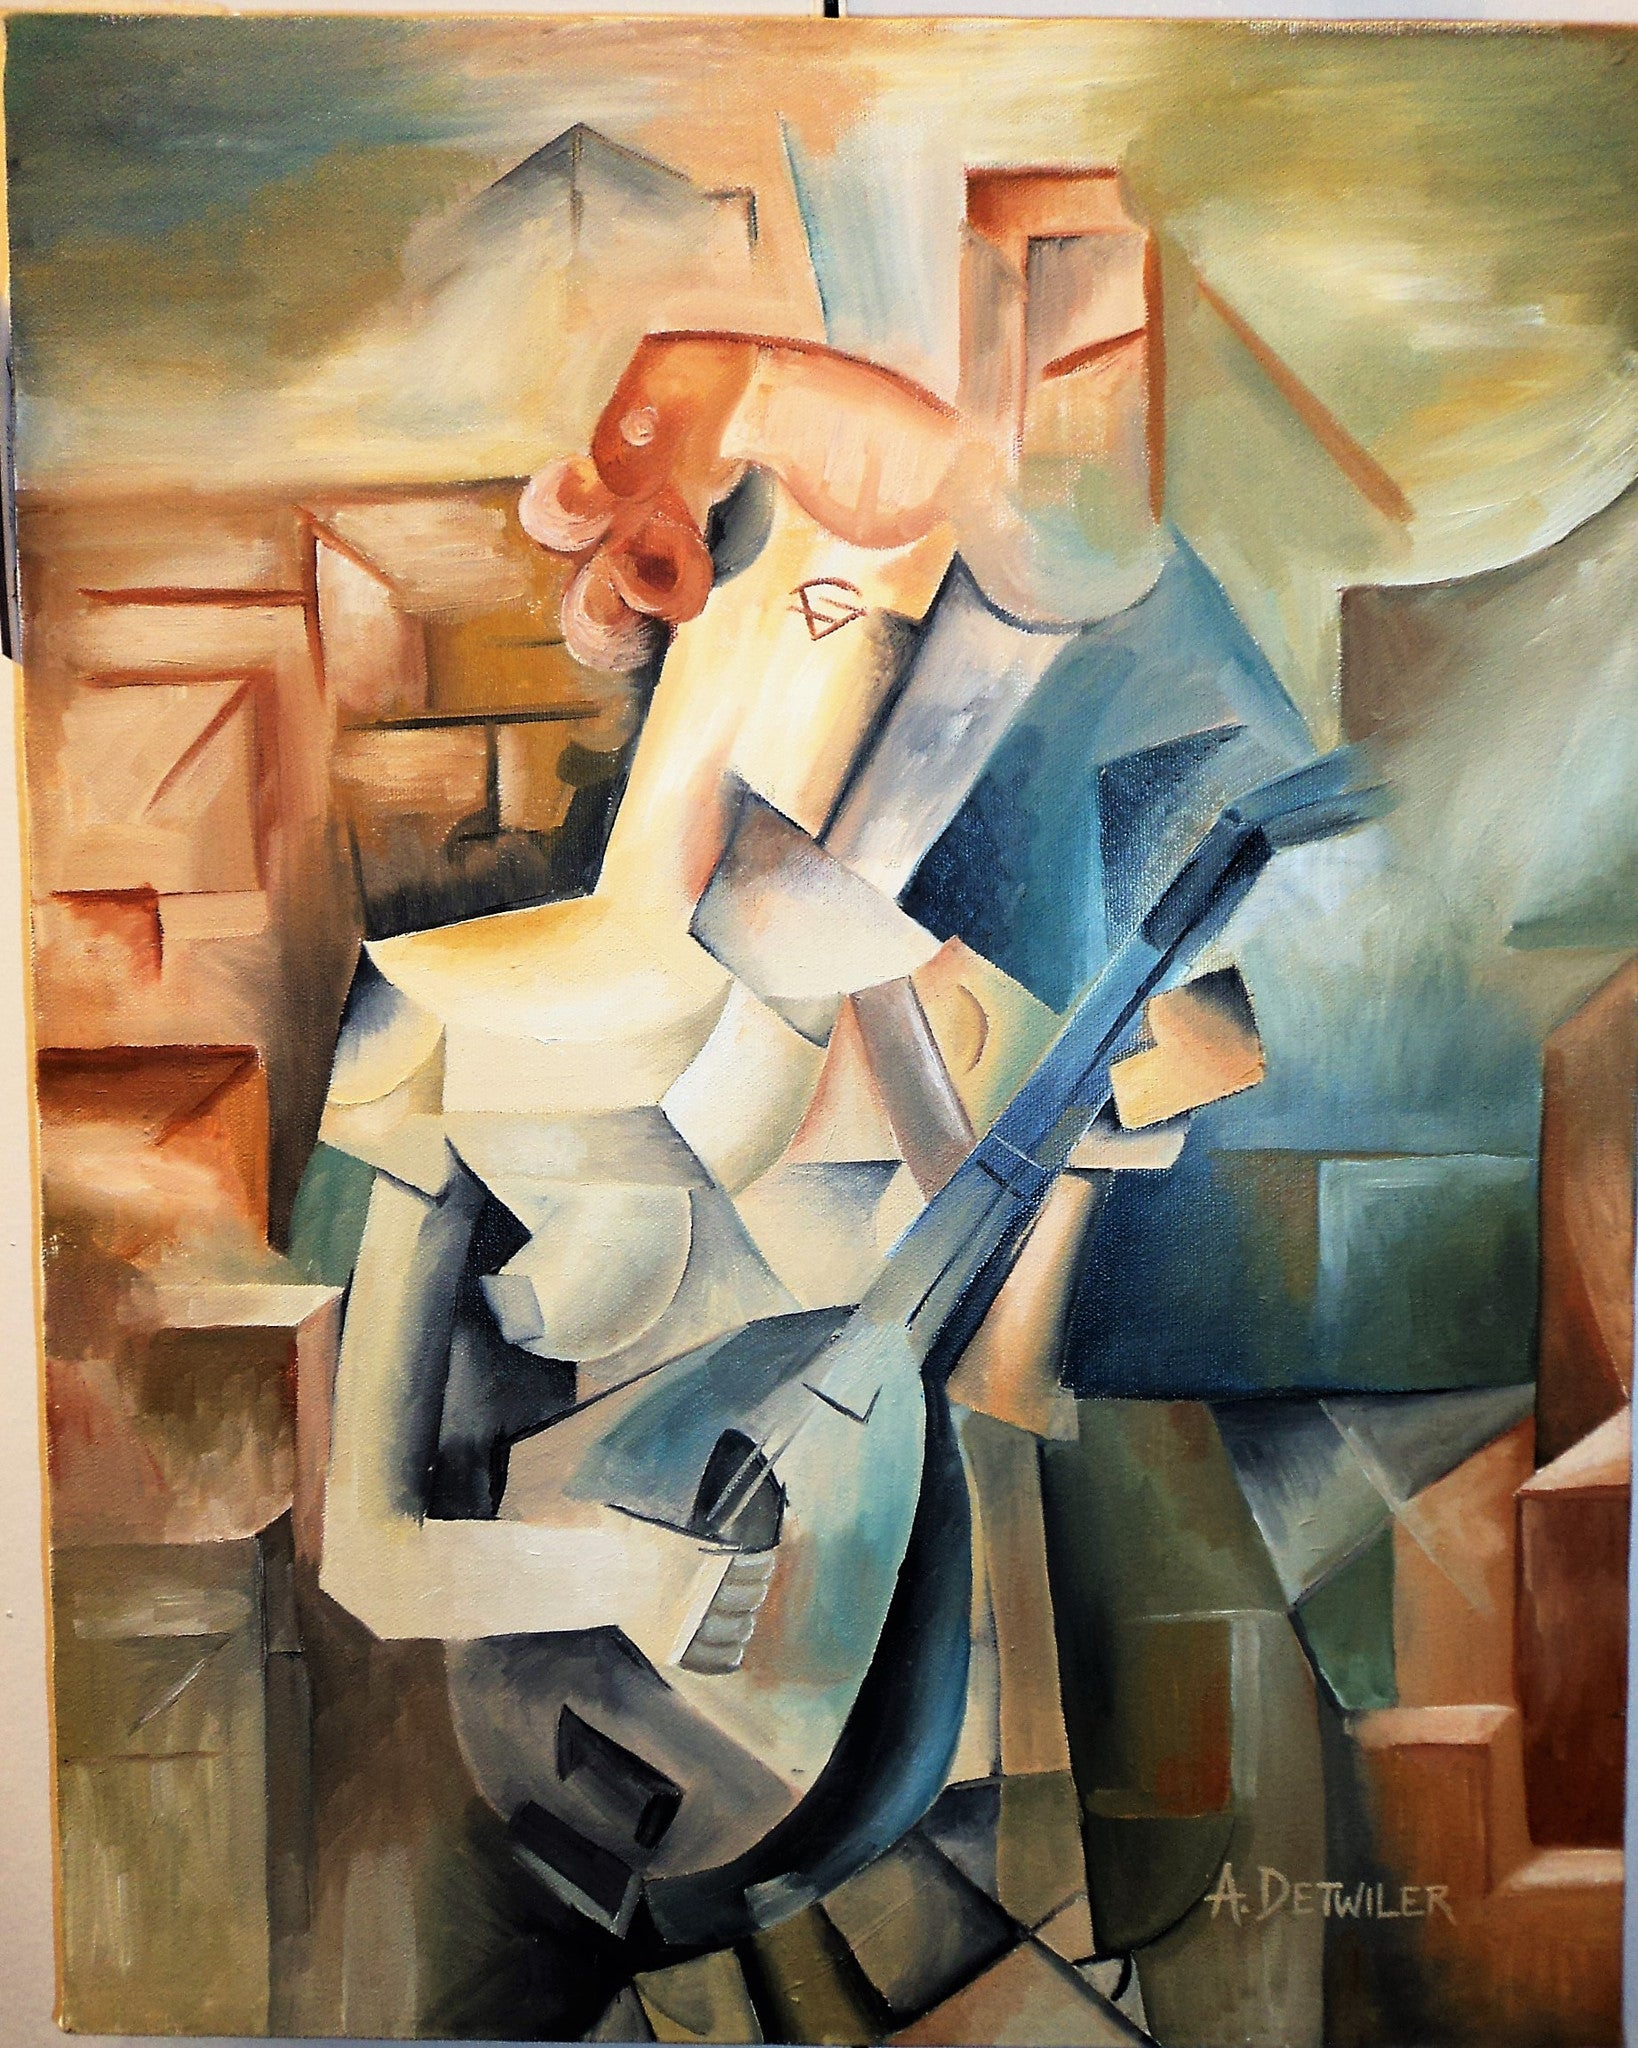 A. Detwiler Cubist Painting